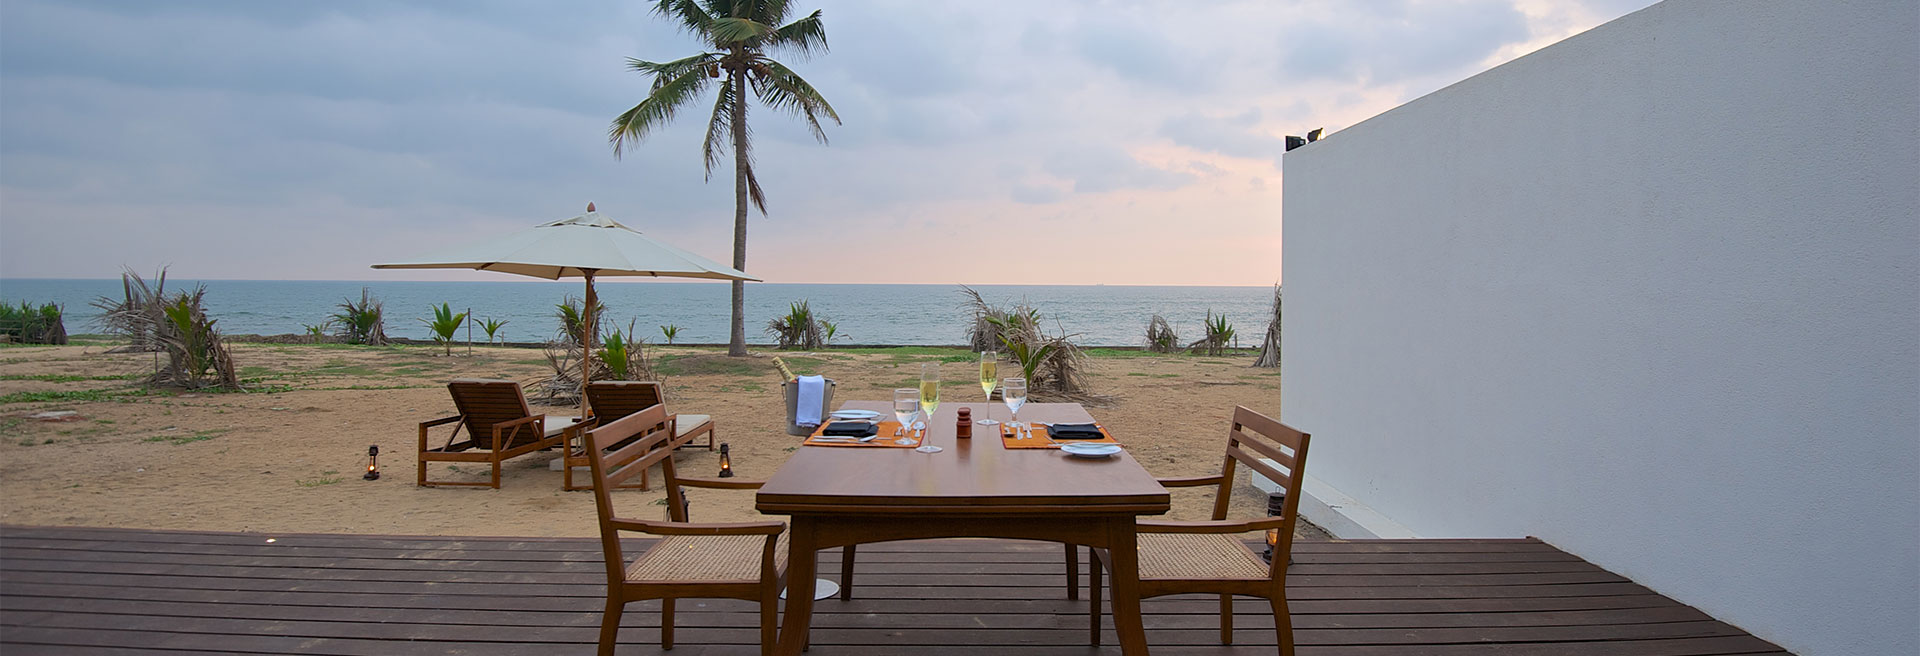 romantic outdoor dining with a beach view